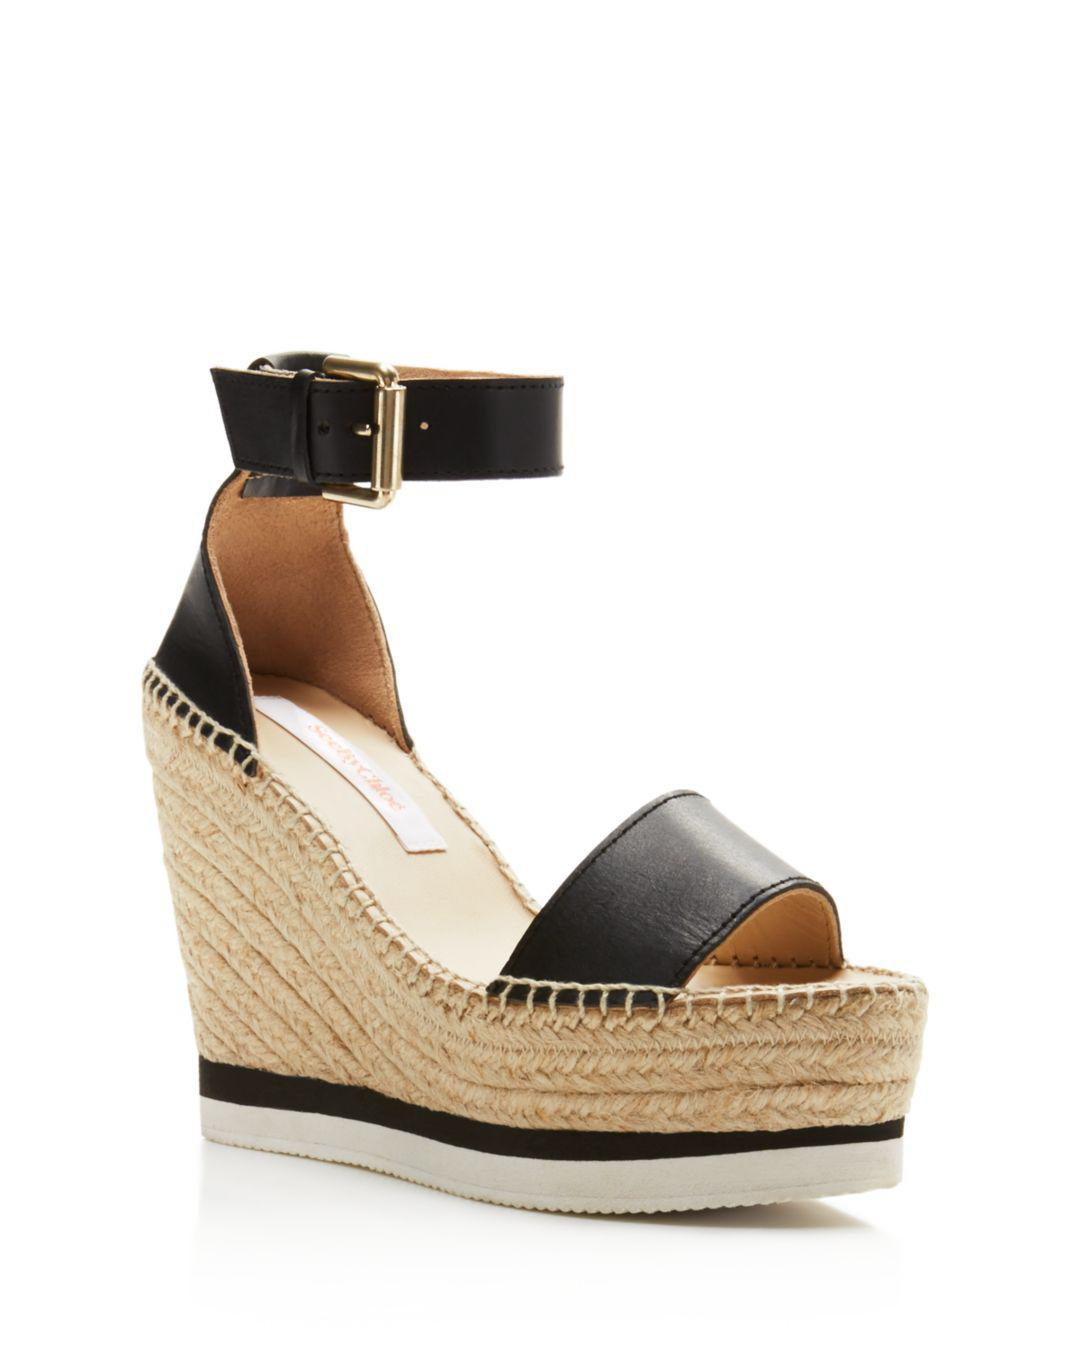 098a1cc5175 See By Chloé - Black Glyn Leather Espadrille Platform Wedge Ankle Strap  Sandals - Lyst. View fullscreen